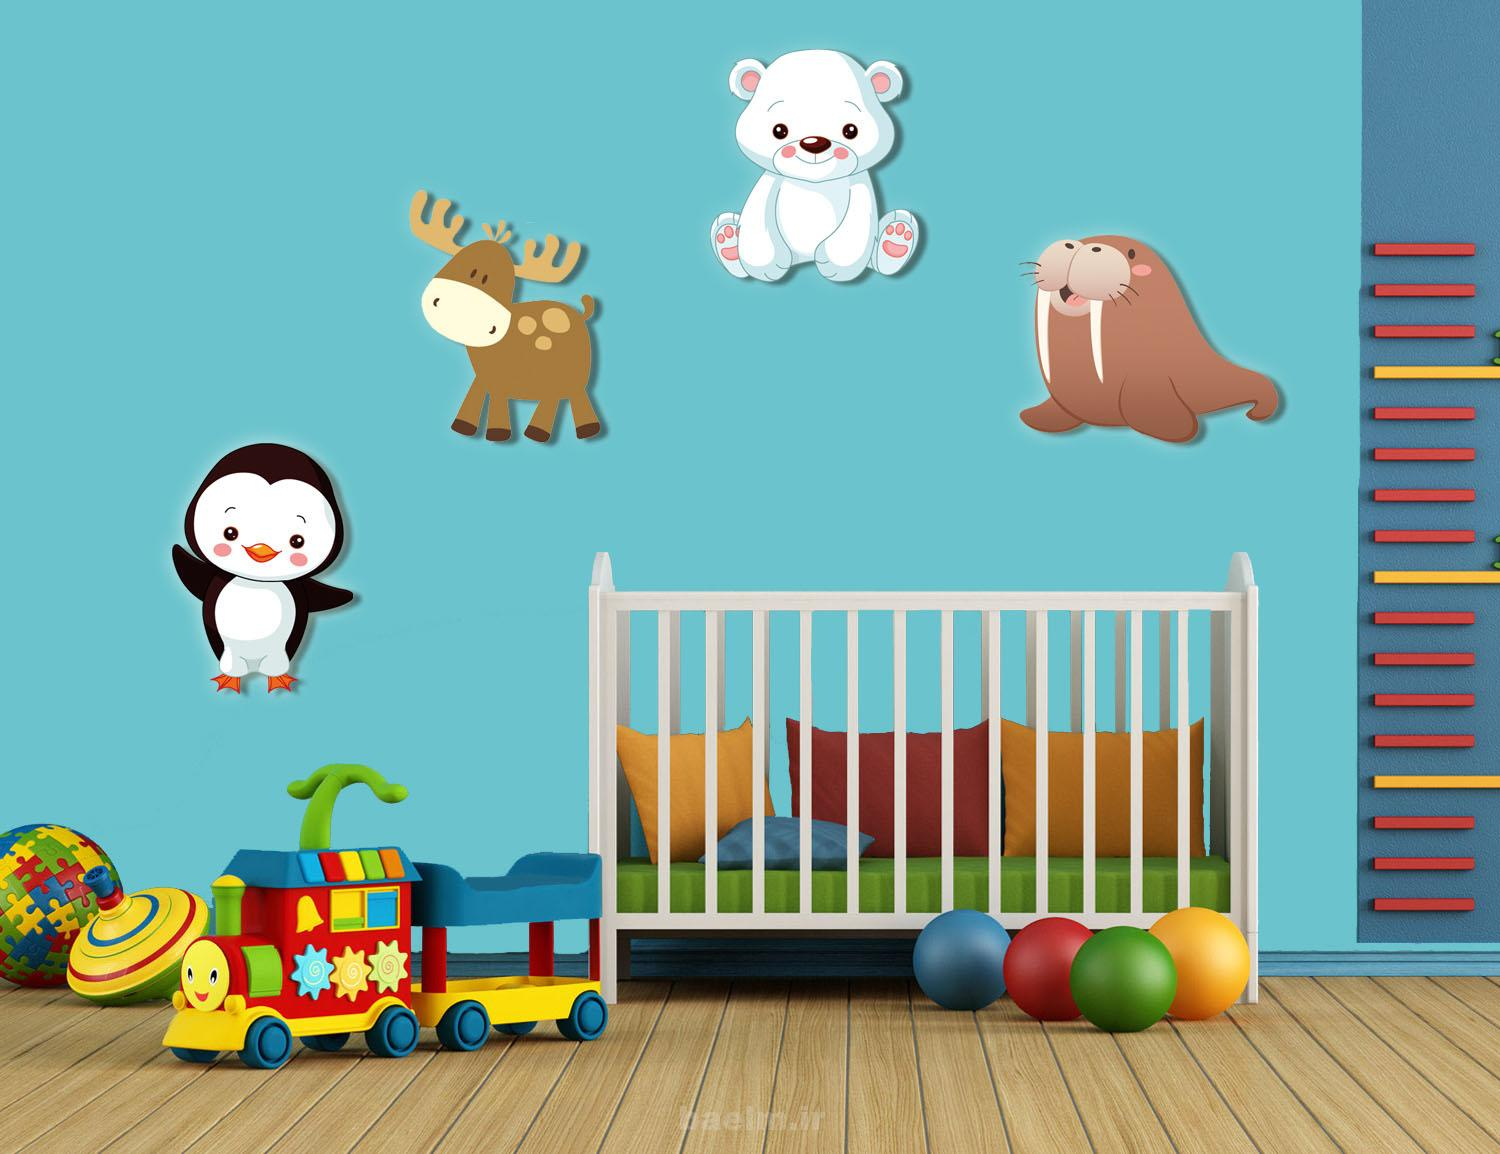 nursery wall decor 15 Nursery Wall Decor